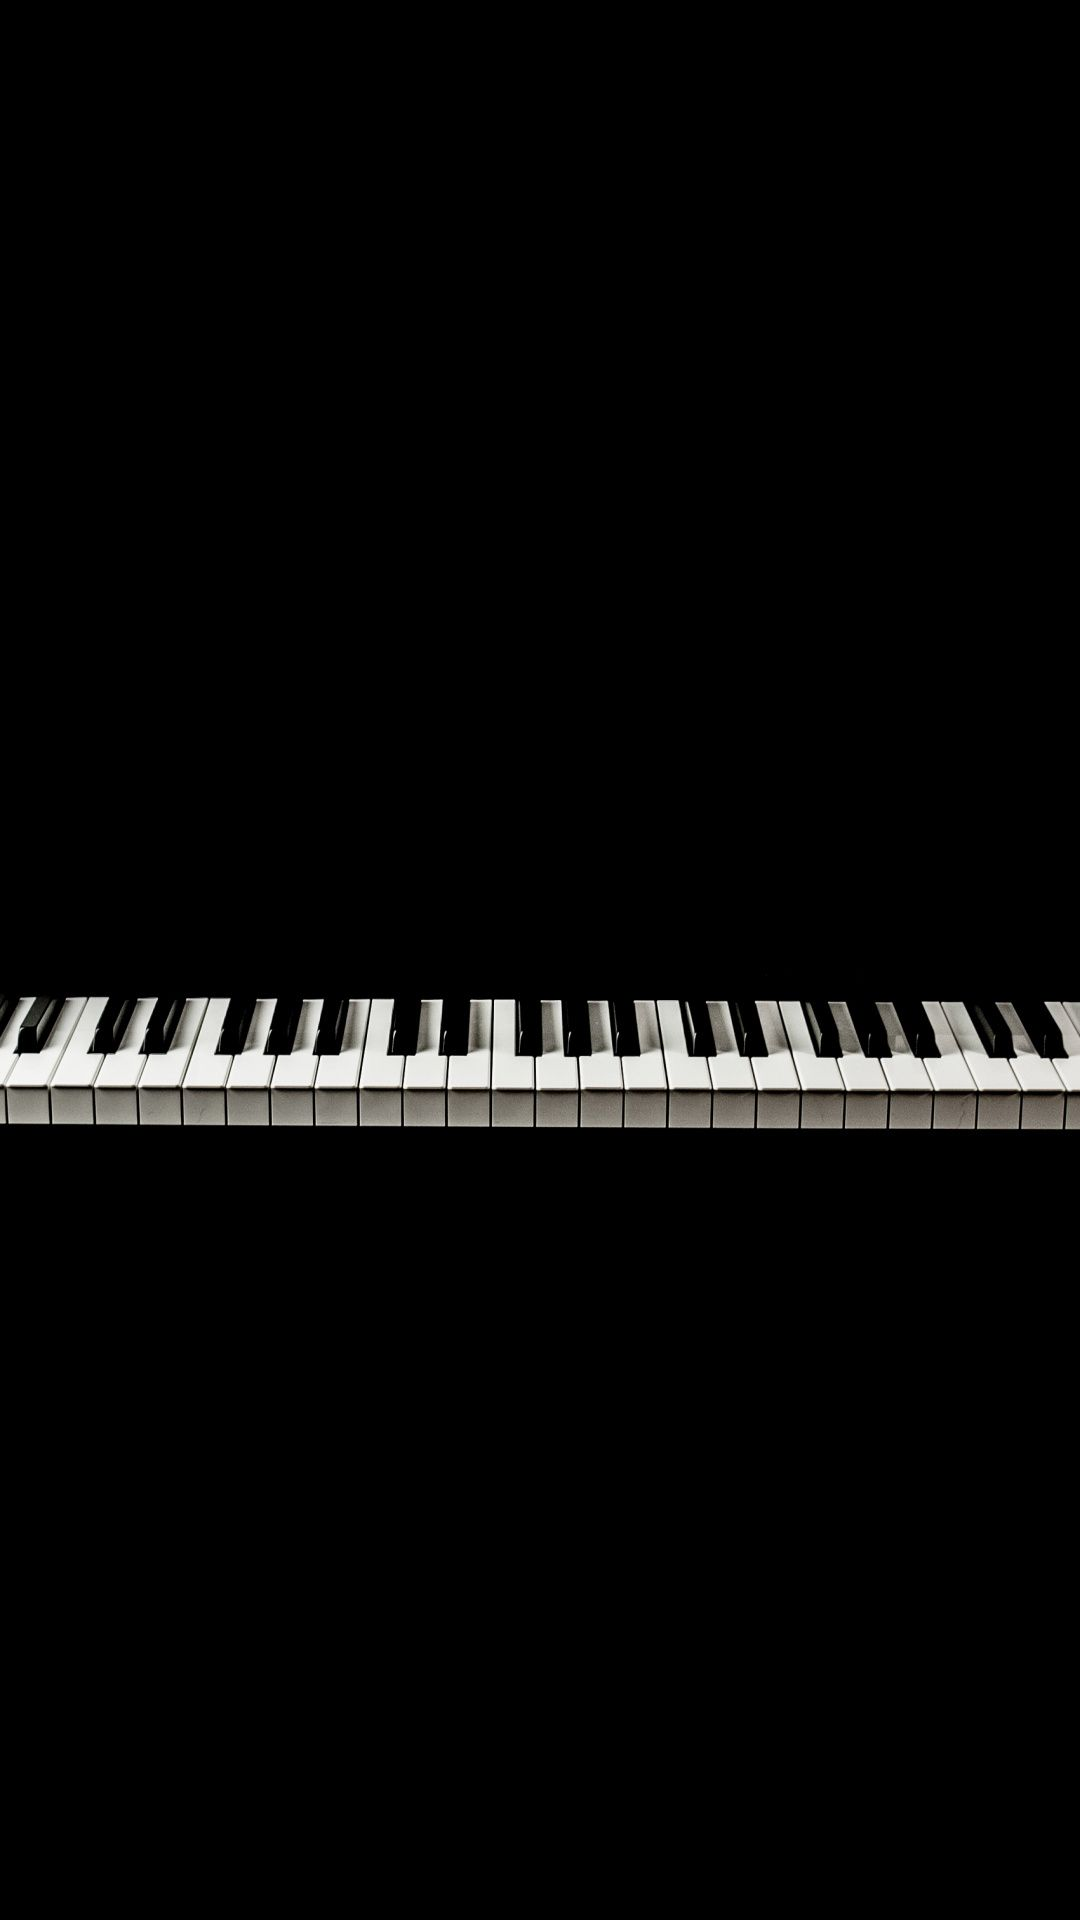 Wallpapers Tech Electronic Device Electric Piano Piano Musical